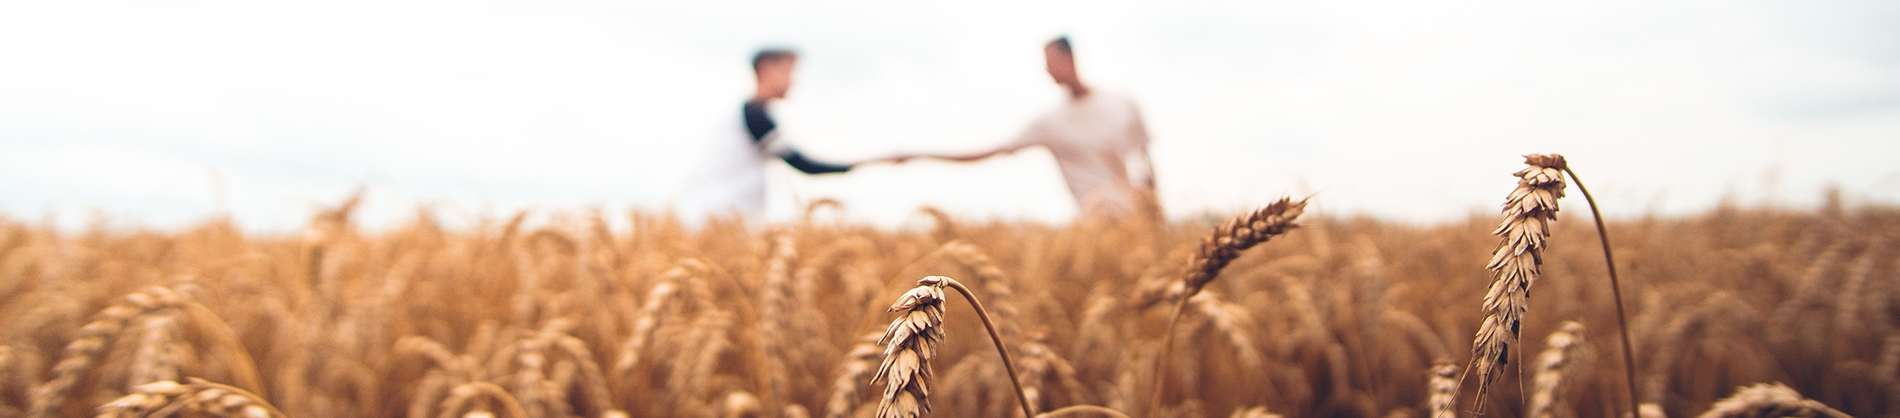 Two men shaking hands in the distance of a wheat field